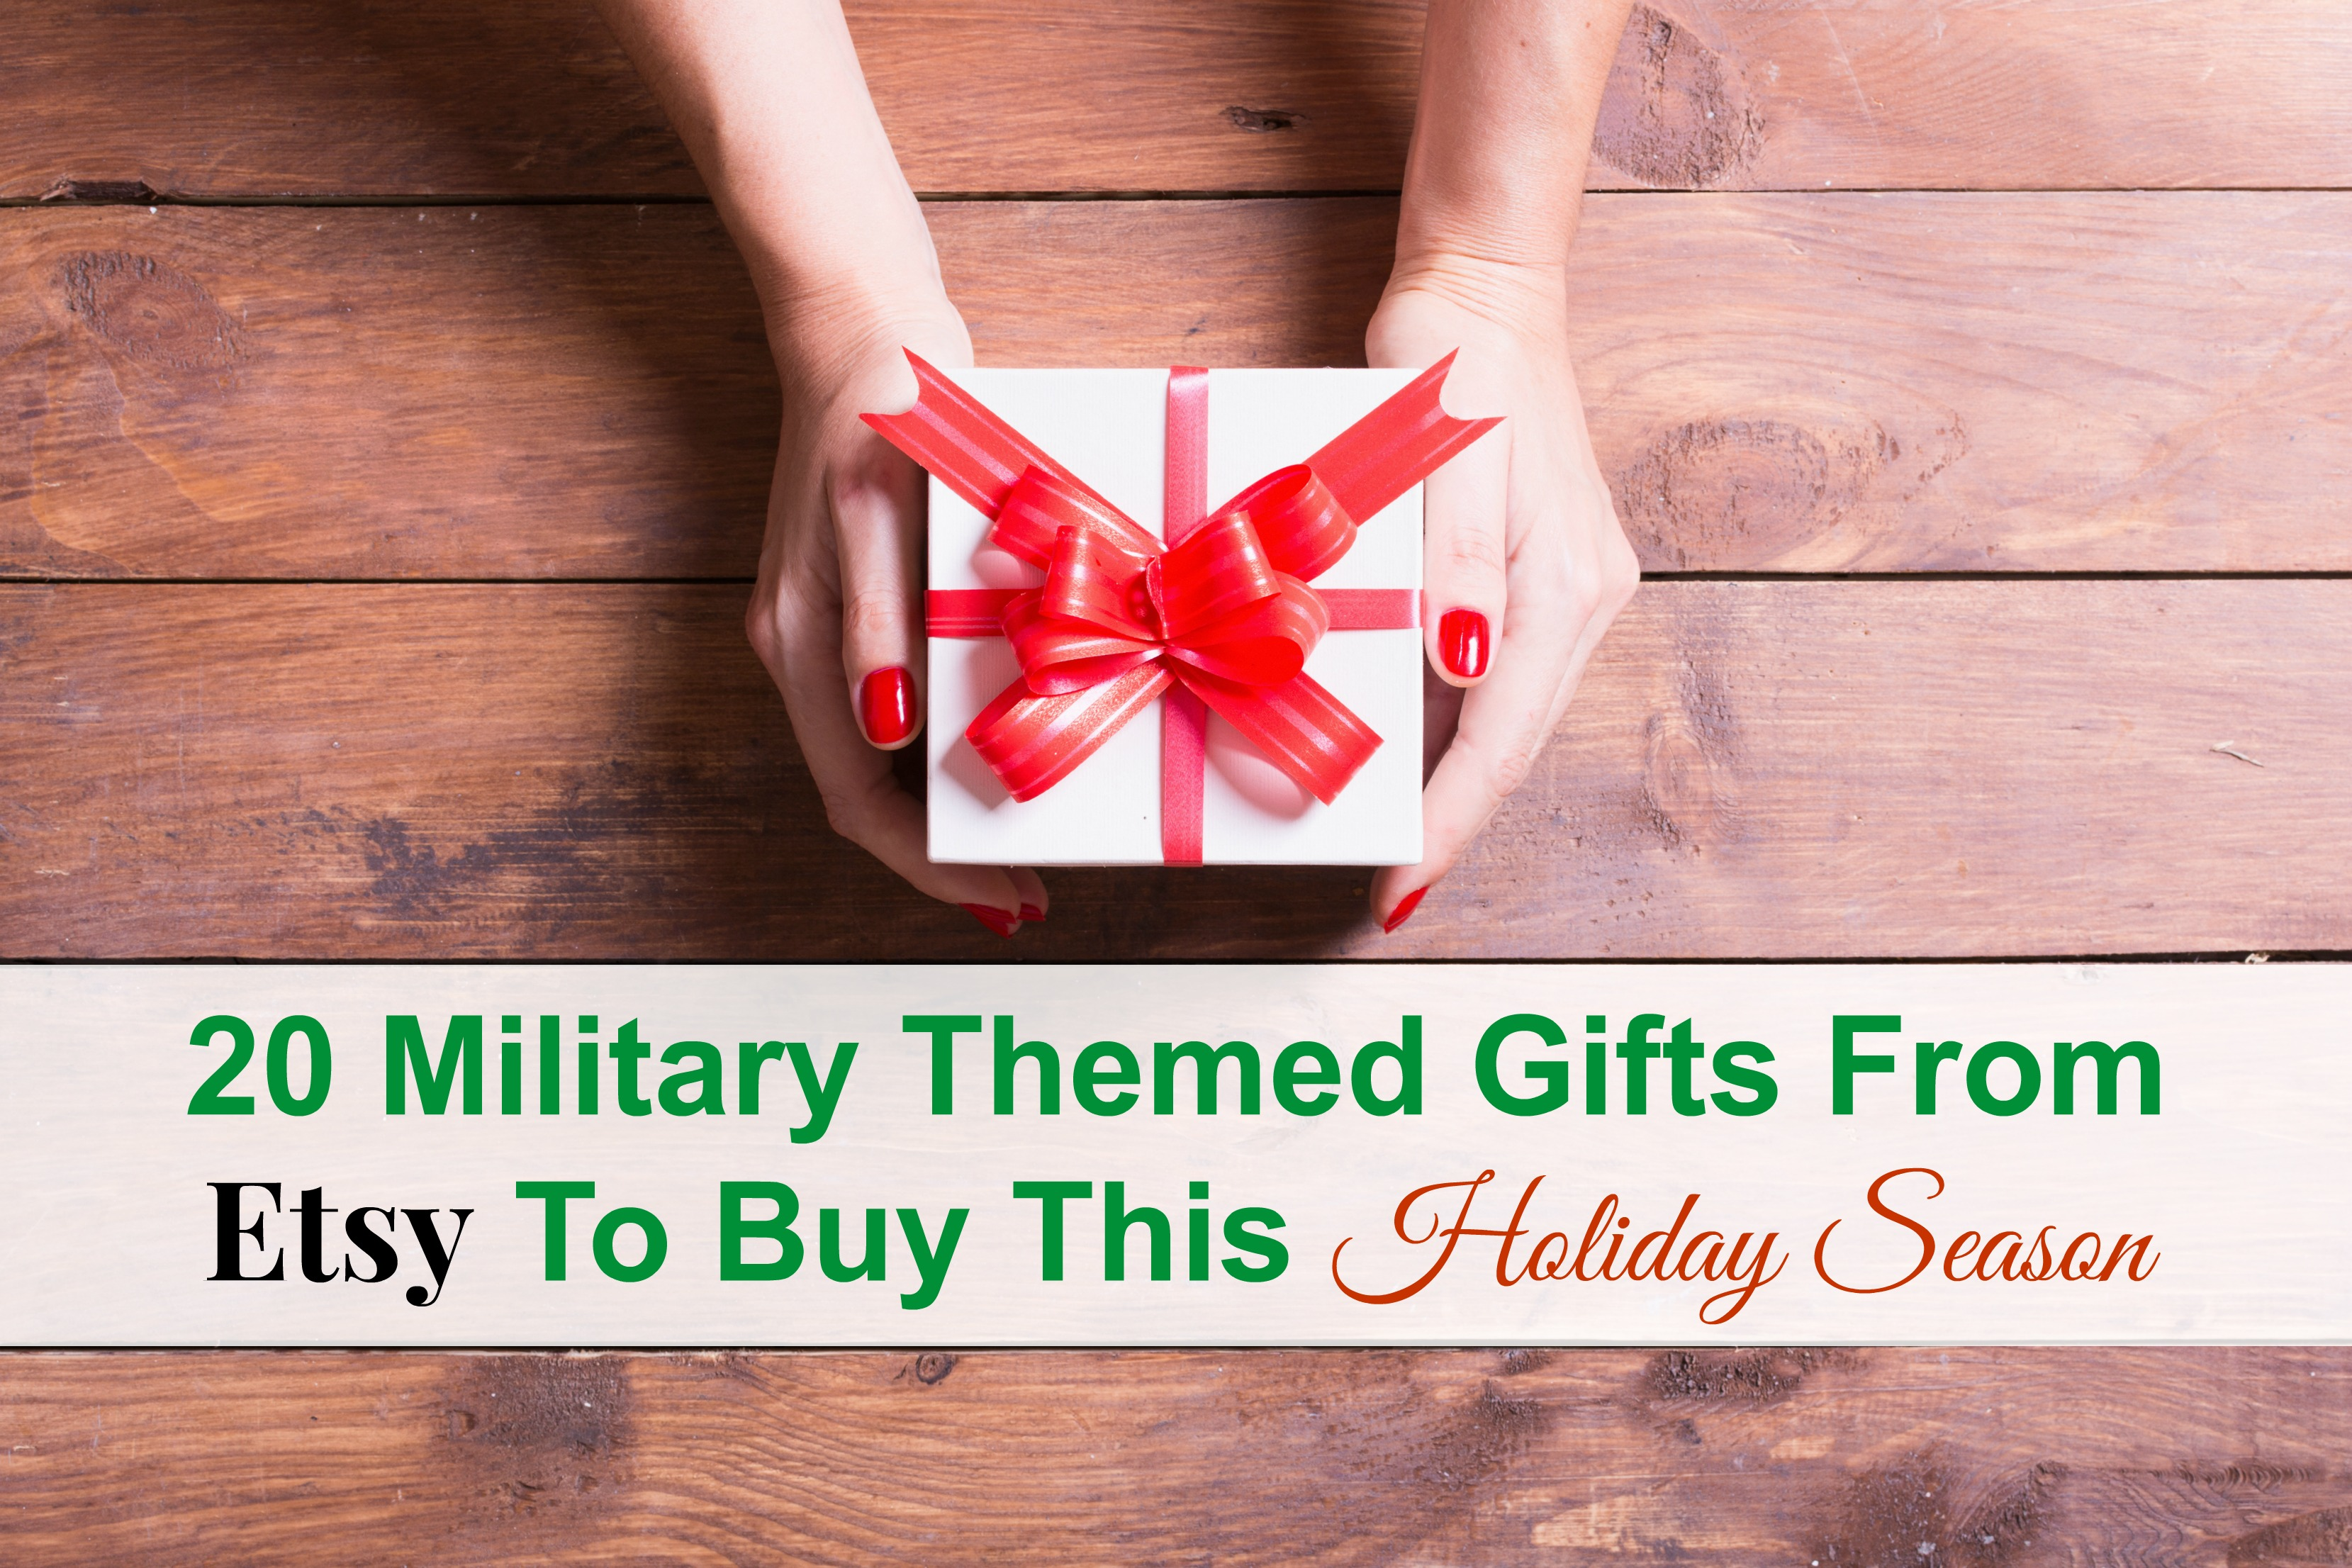 20 Military Themed Gifts From Etsy To Buy This Holiday Season